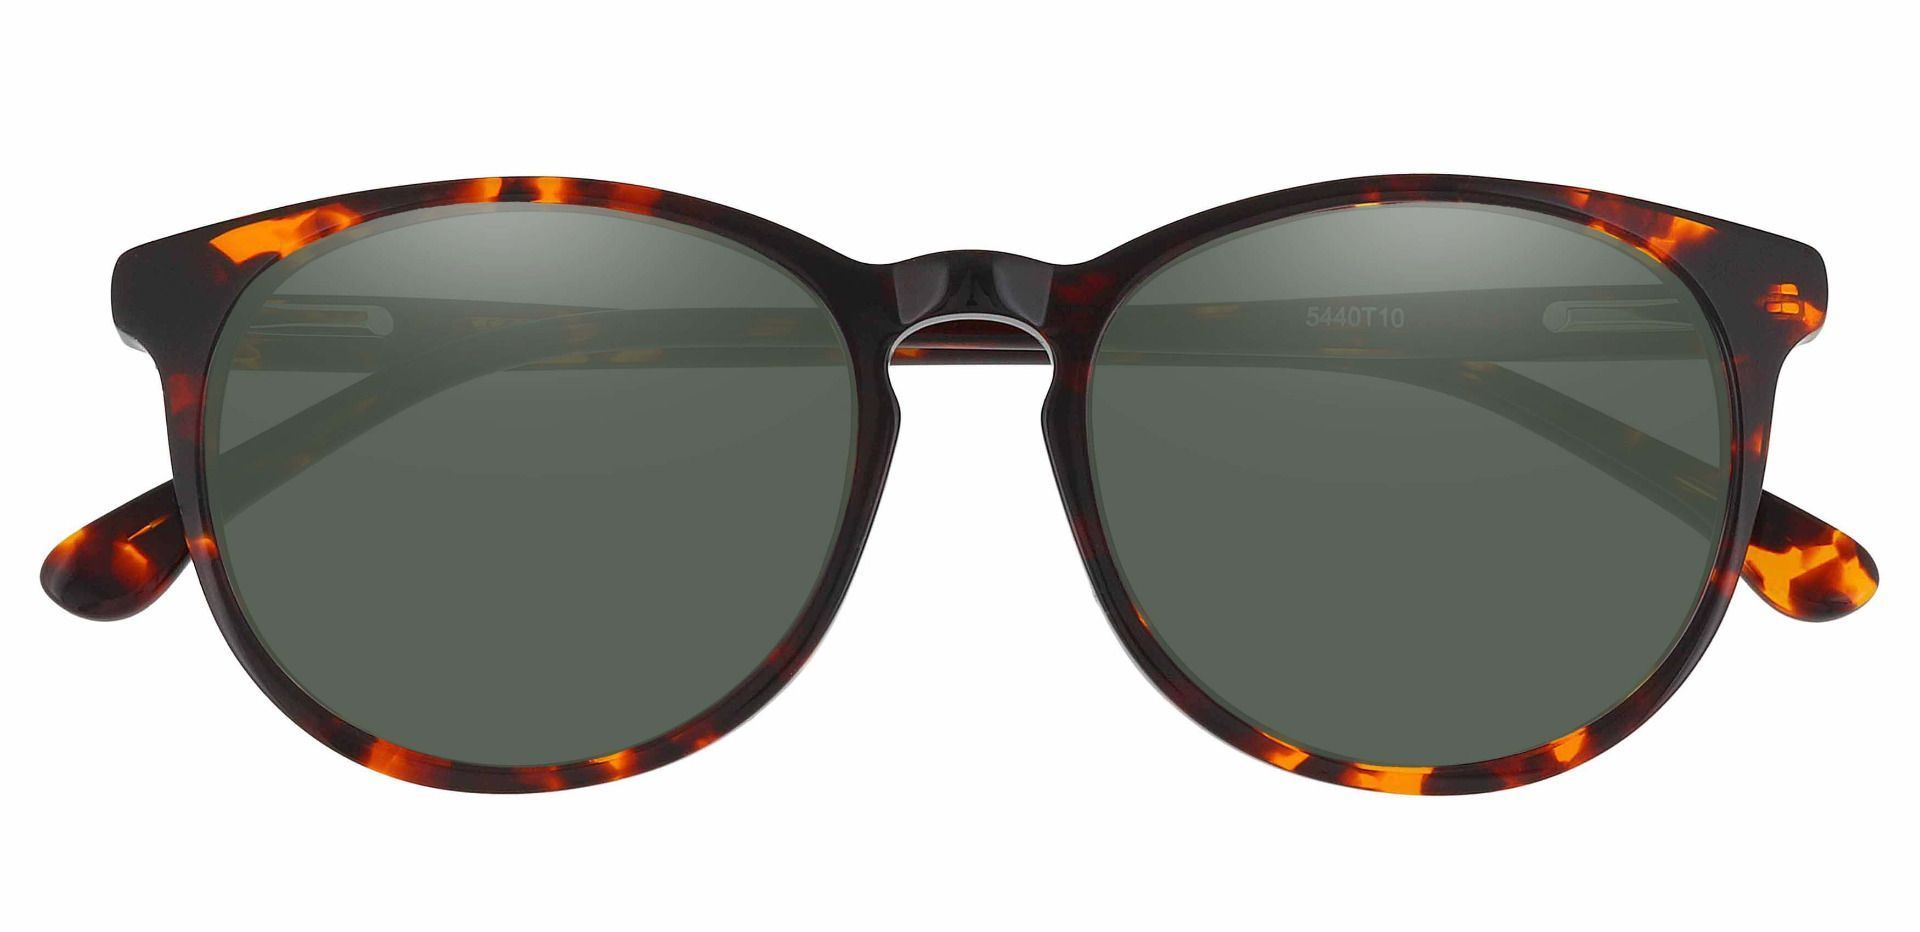 Carriage Round Reading Sunglasses - Tortoise Frame With Green Lenses